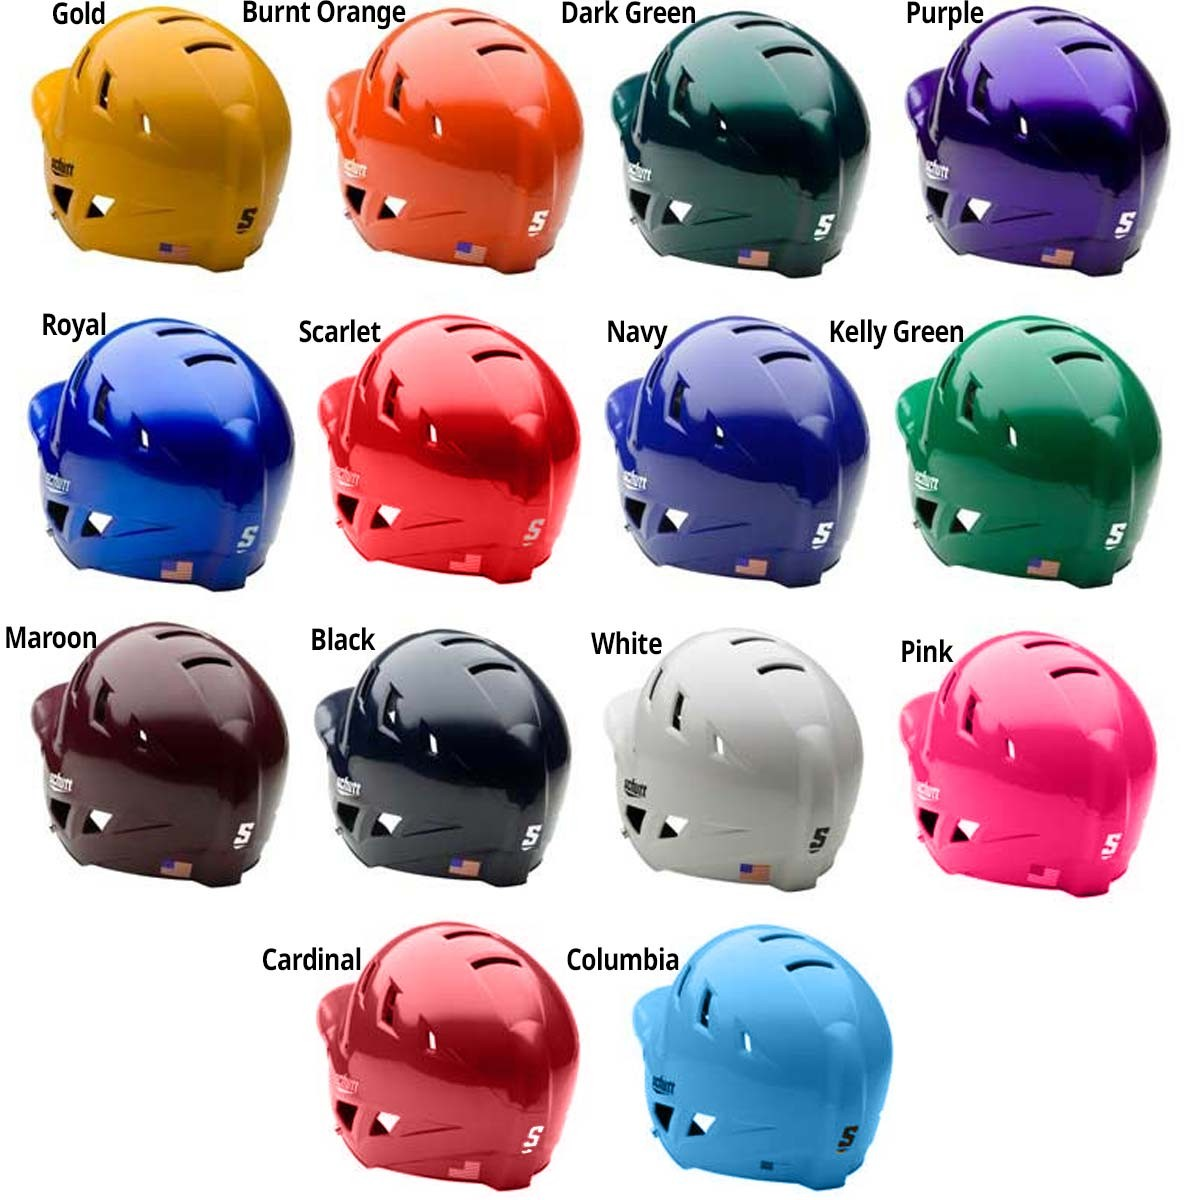 Solid/Matte helmet colors (Solid shown)